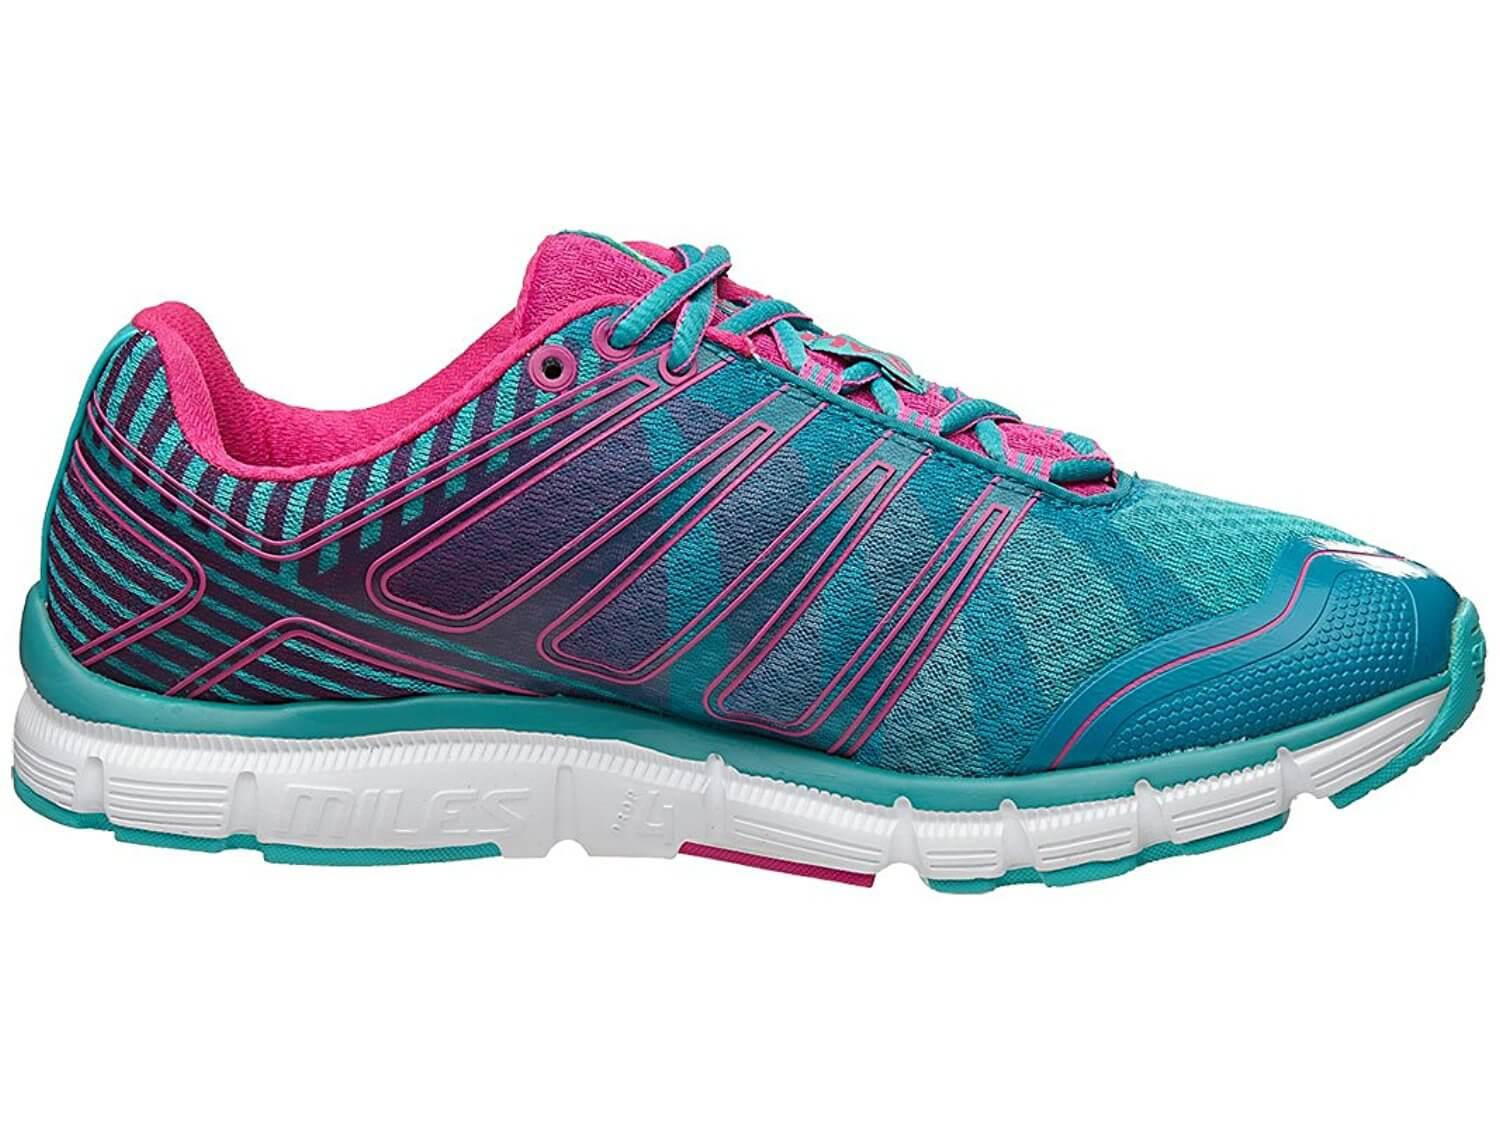 The Salming Miles provides great traction on the road and even treadmills